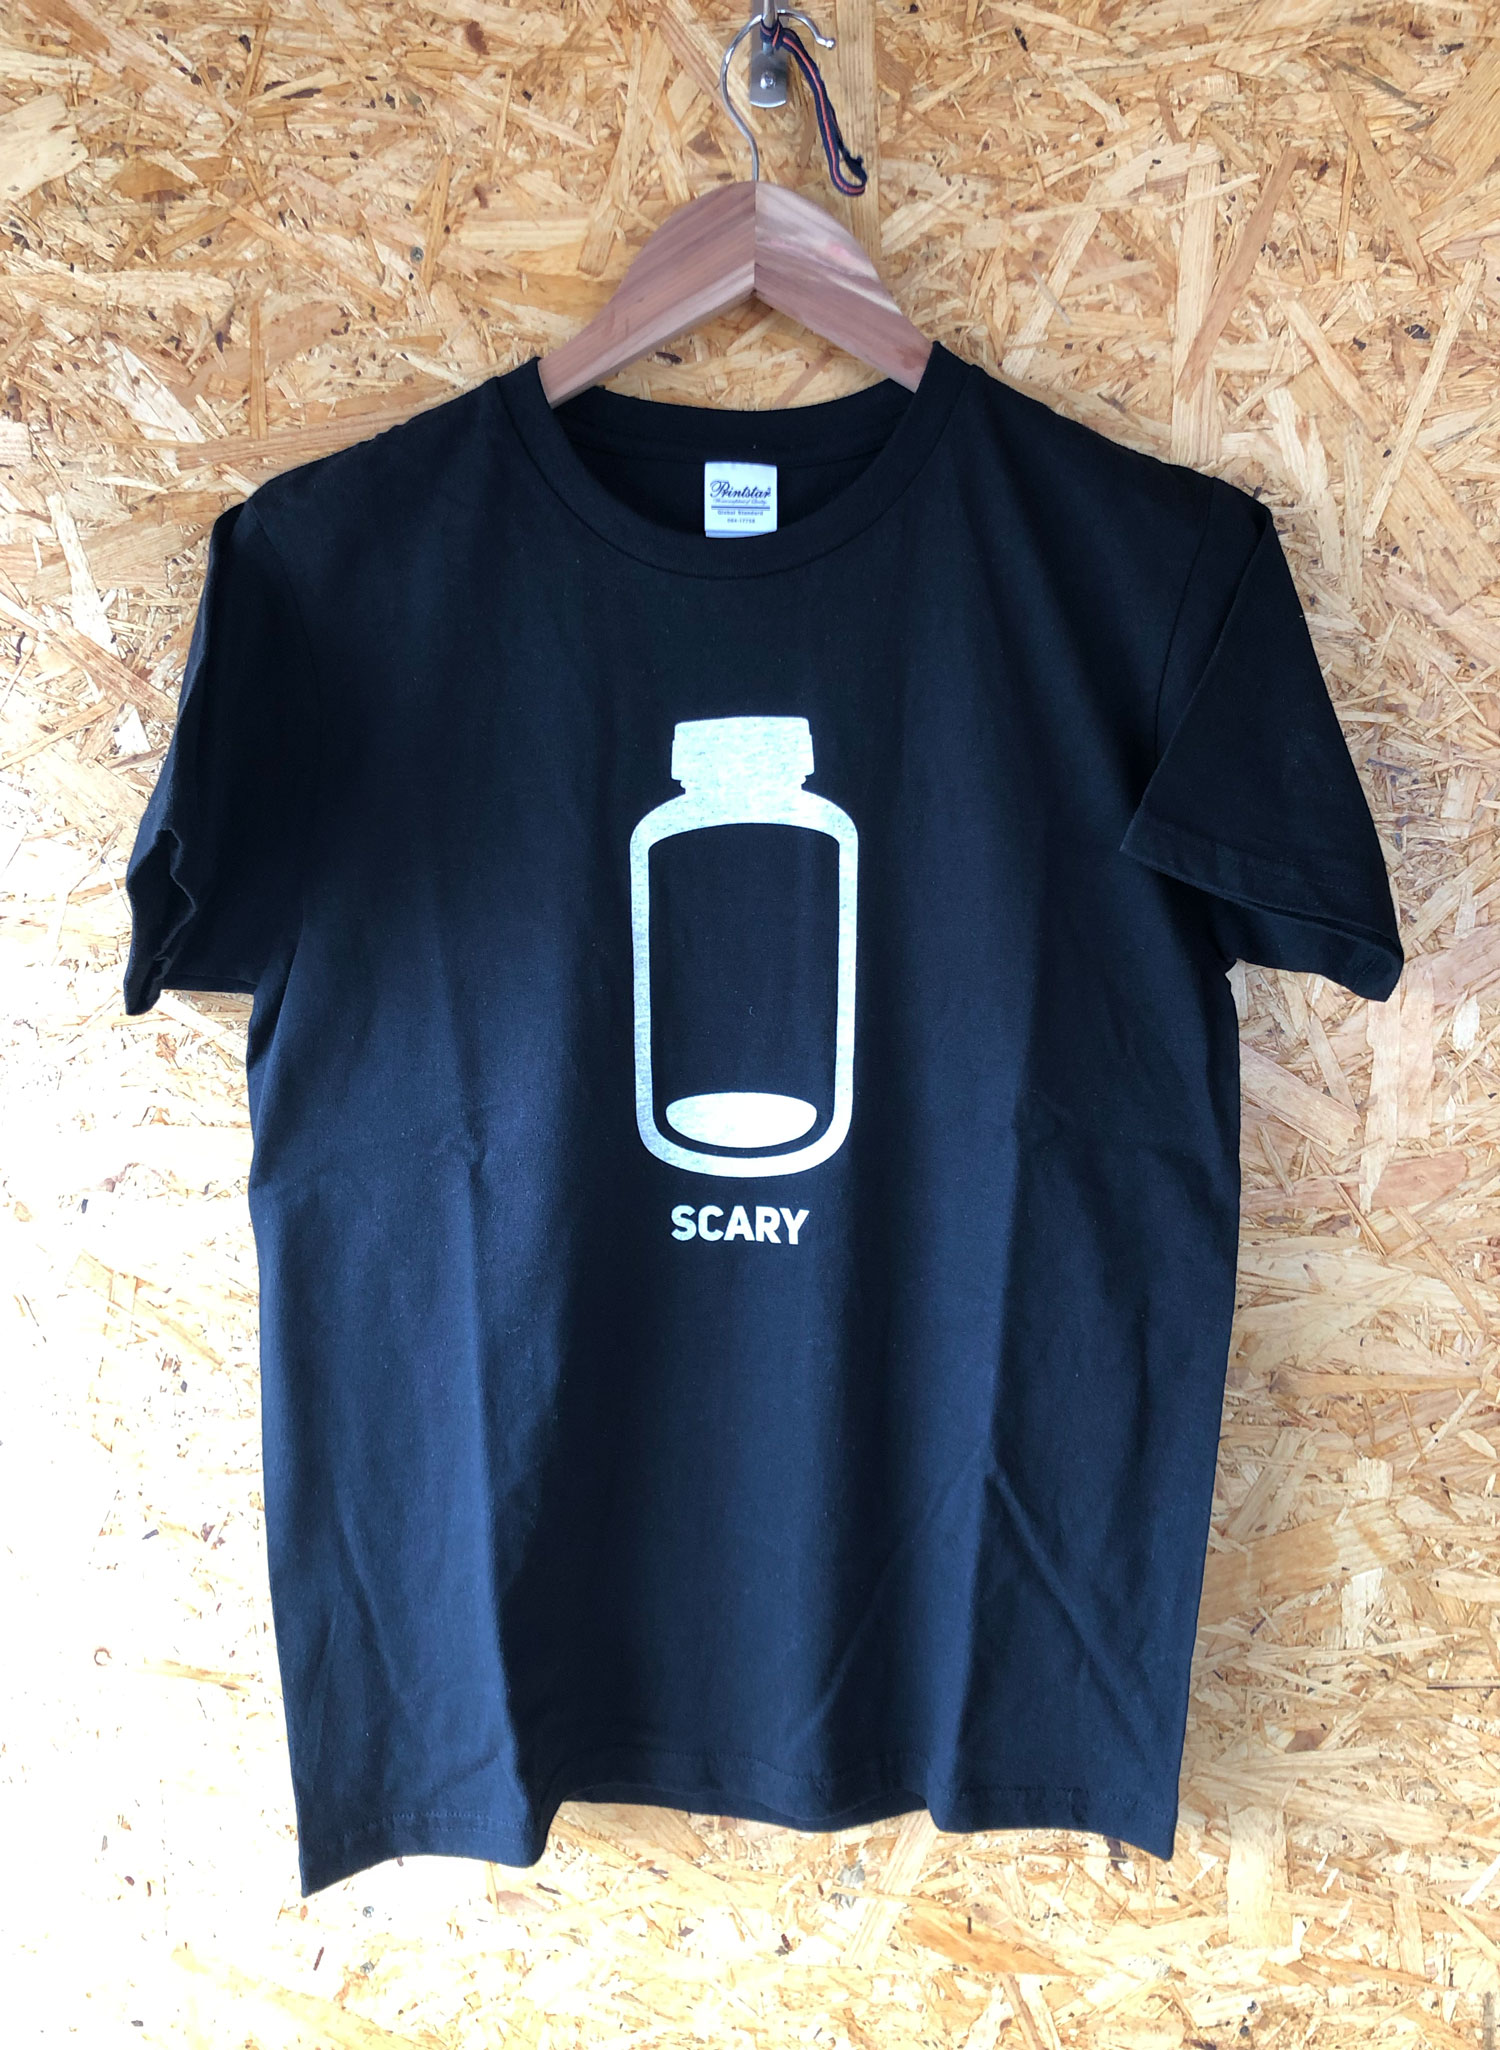 SCARY Tシャツ